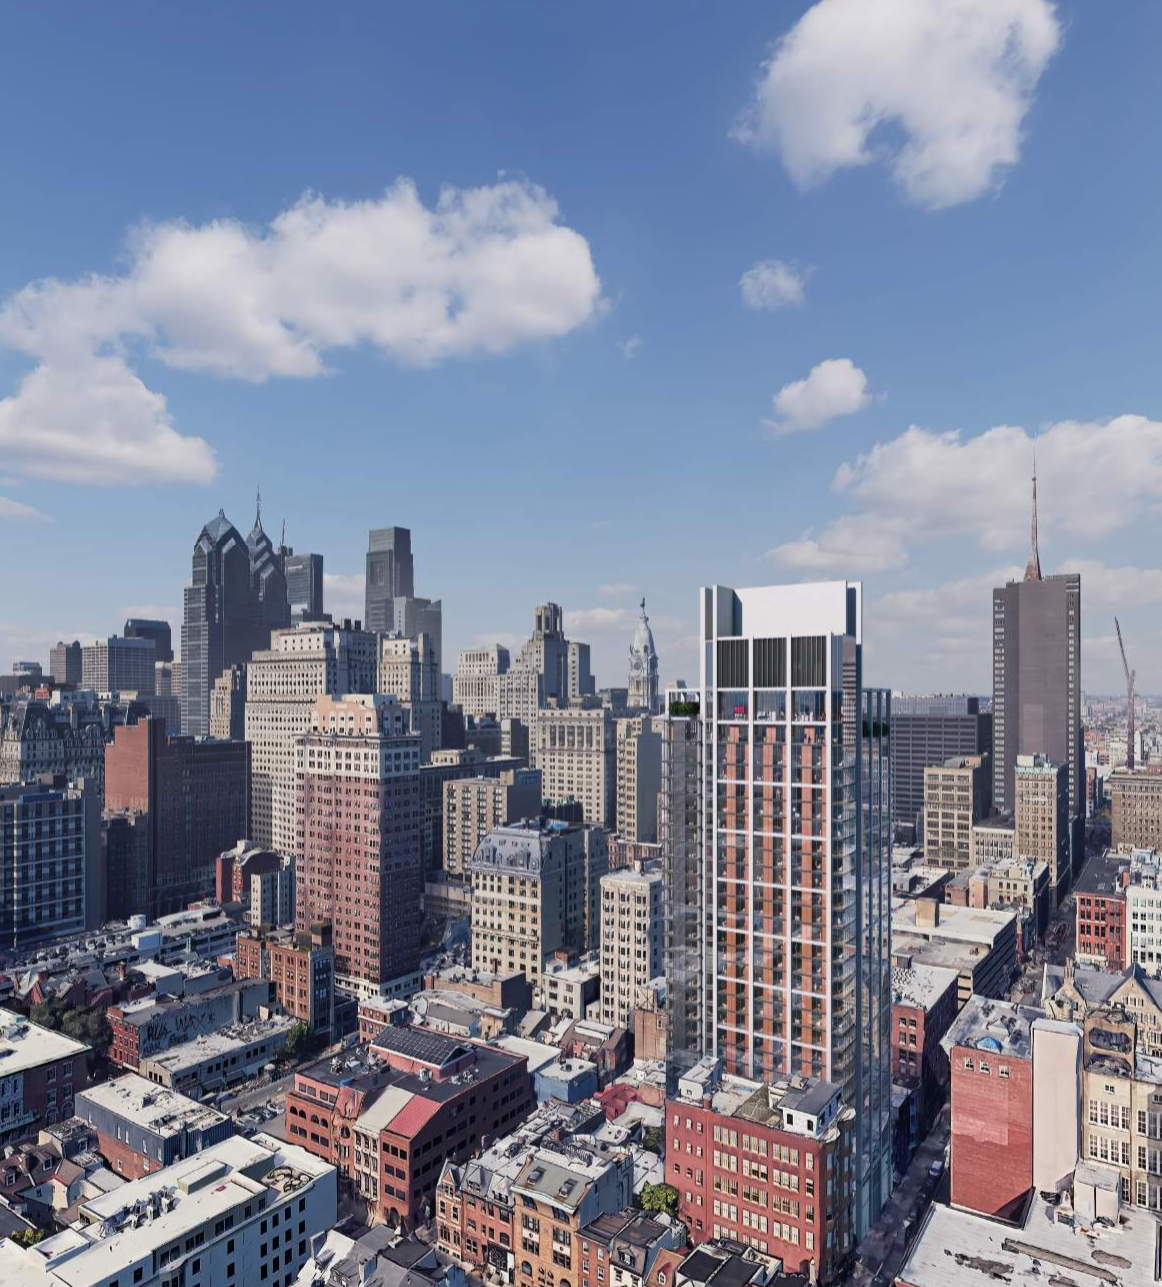 Rendering of 204 South 12th Street. Credit: BLT Architects